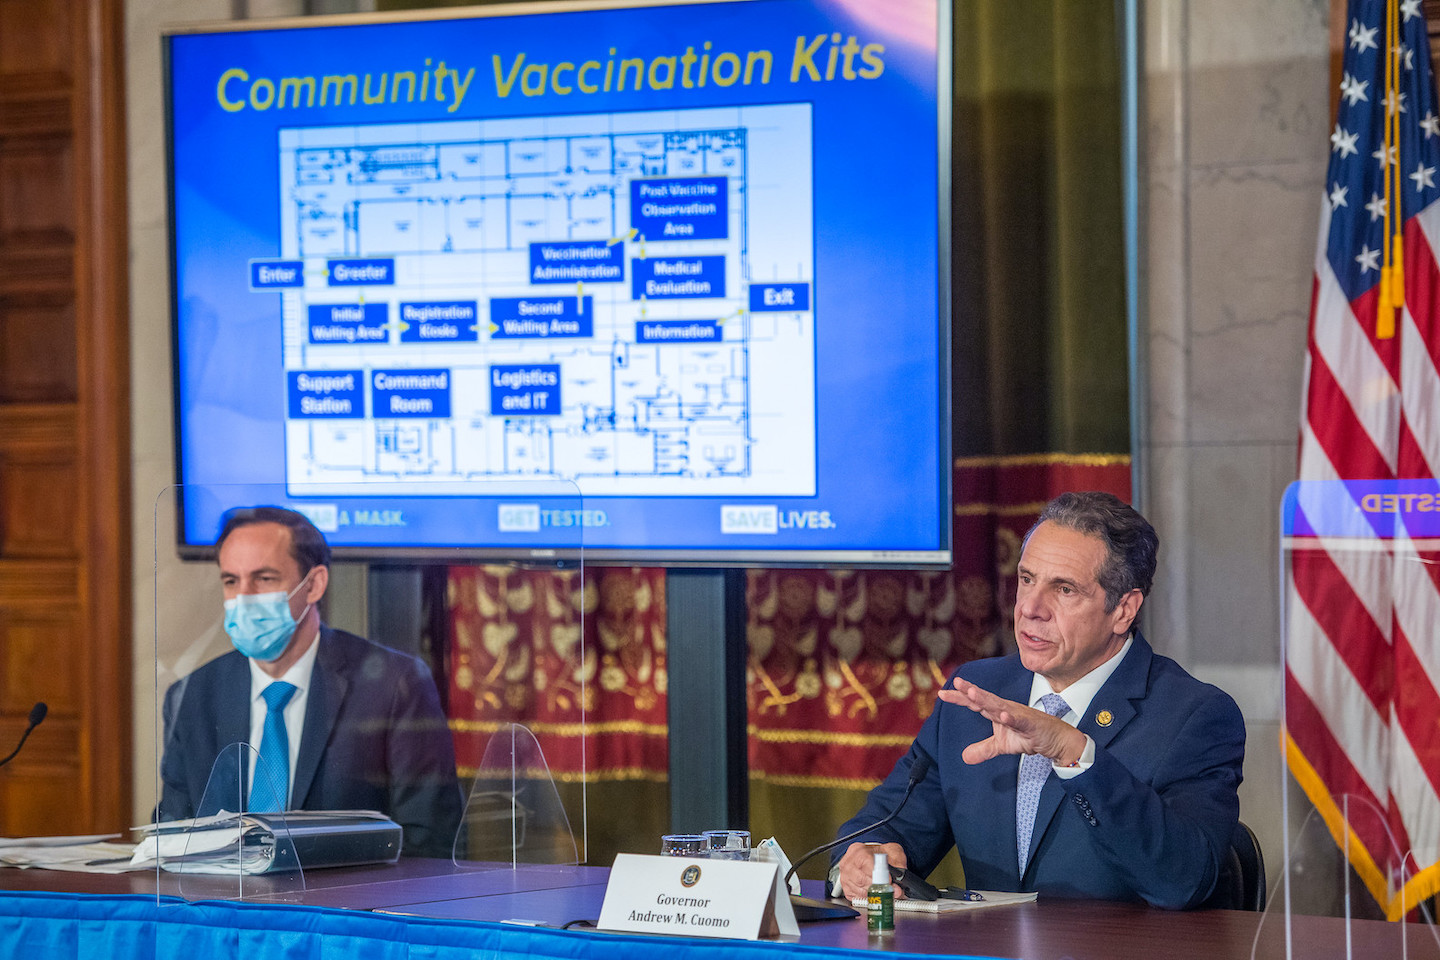 Gov. Andrew Cuomo announces New York has administered 38,000 doses of the COVID-19 vaccine - the highest total in the nation.